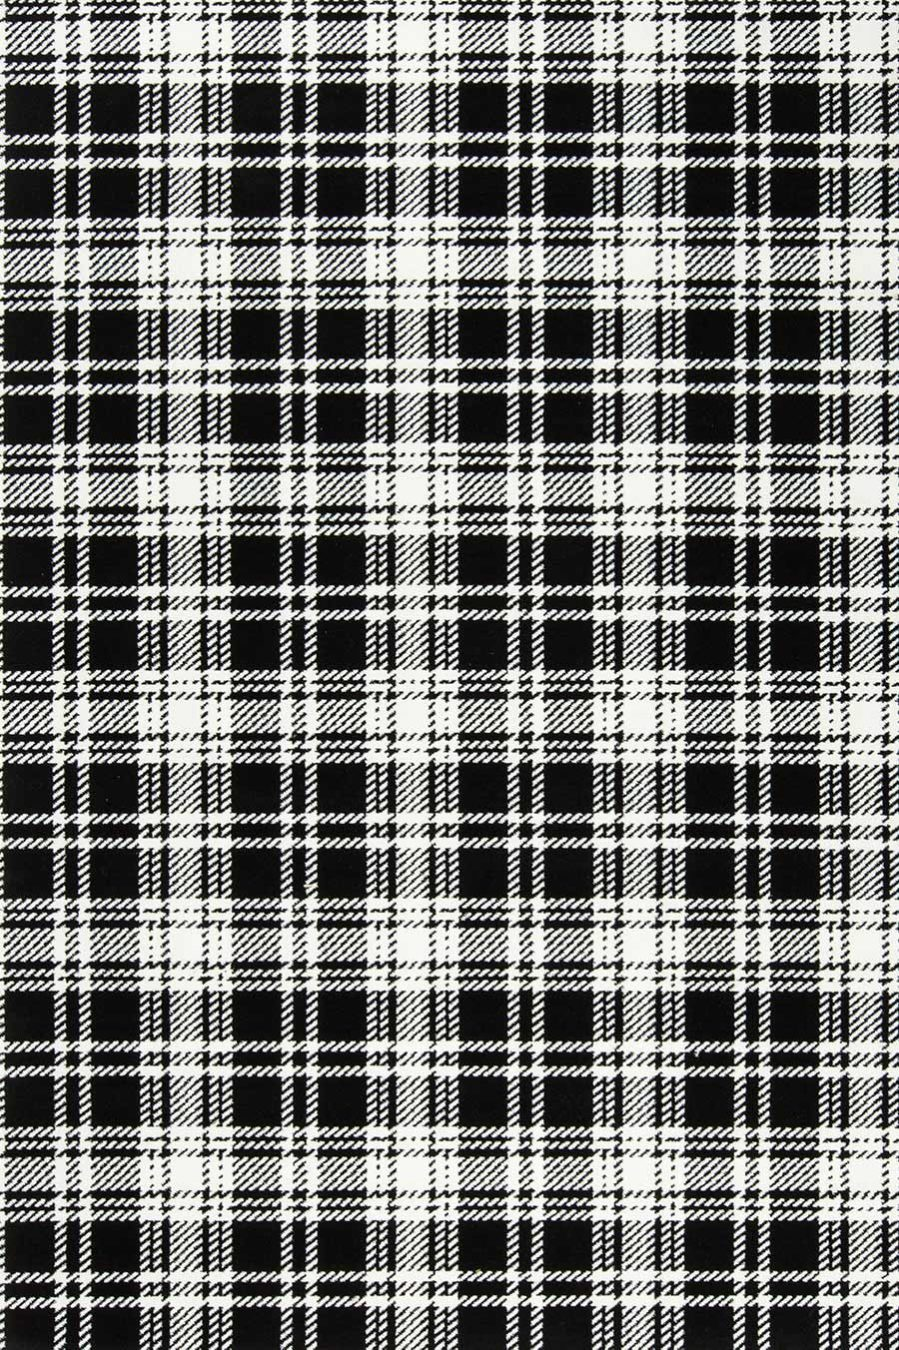 Overhead view of Kintore black and white tartan Axminster carpet